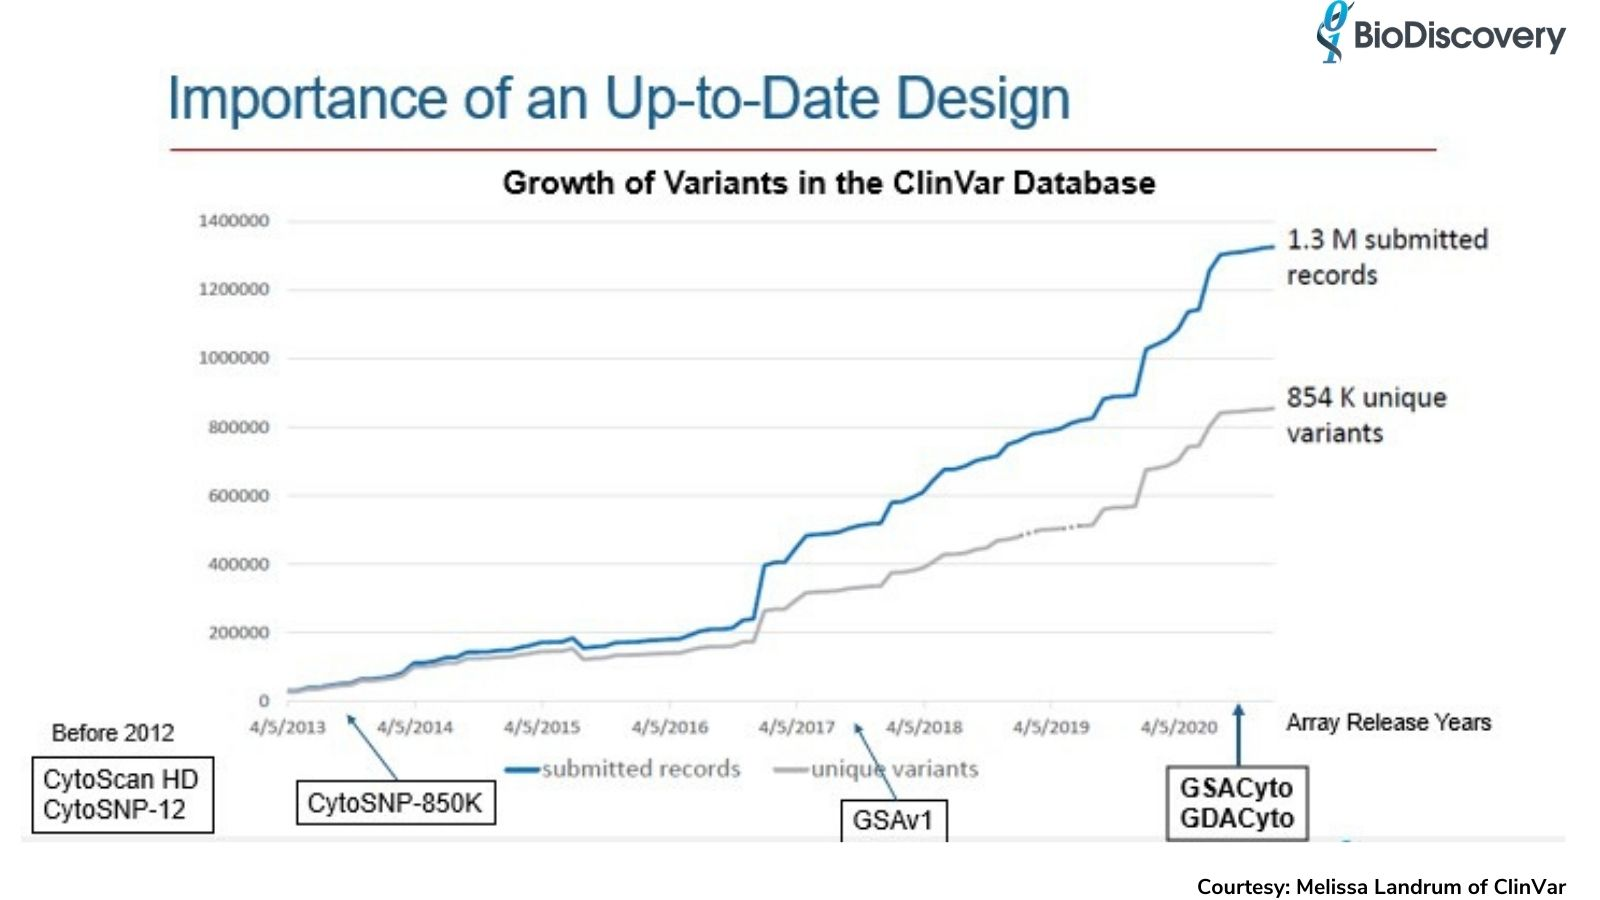 Graph displaying the growth of ClinVar variants compared to array release dates